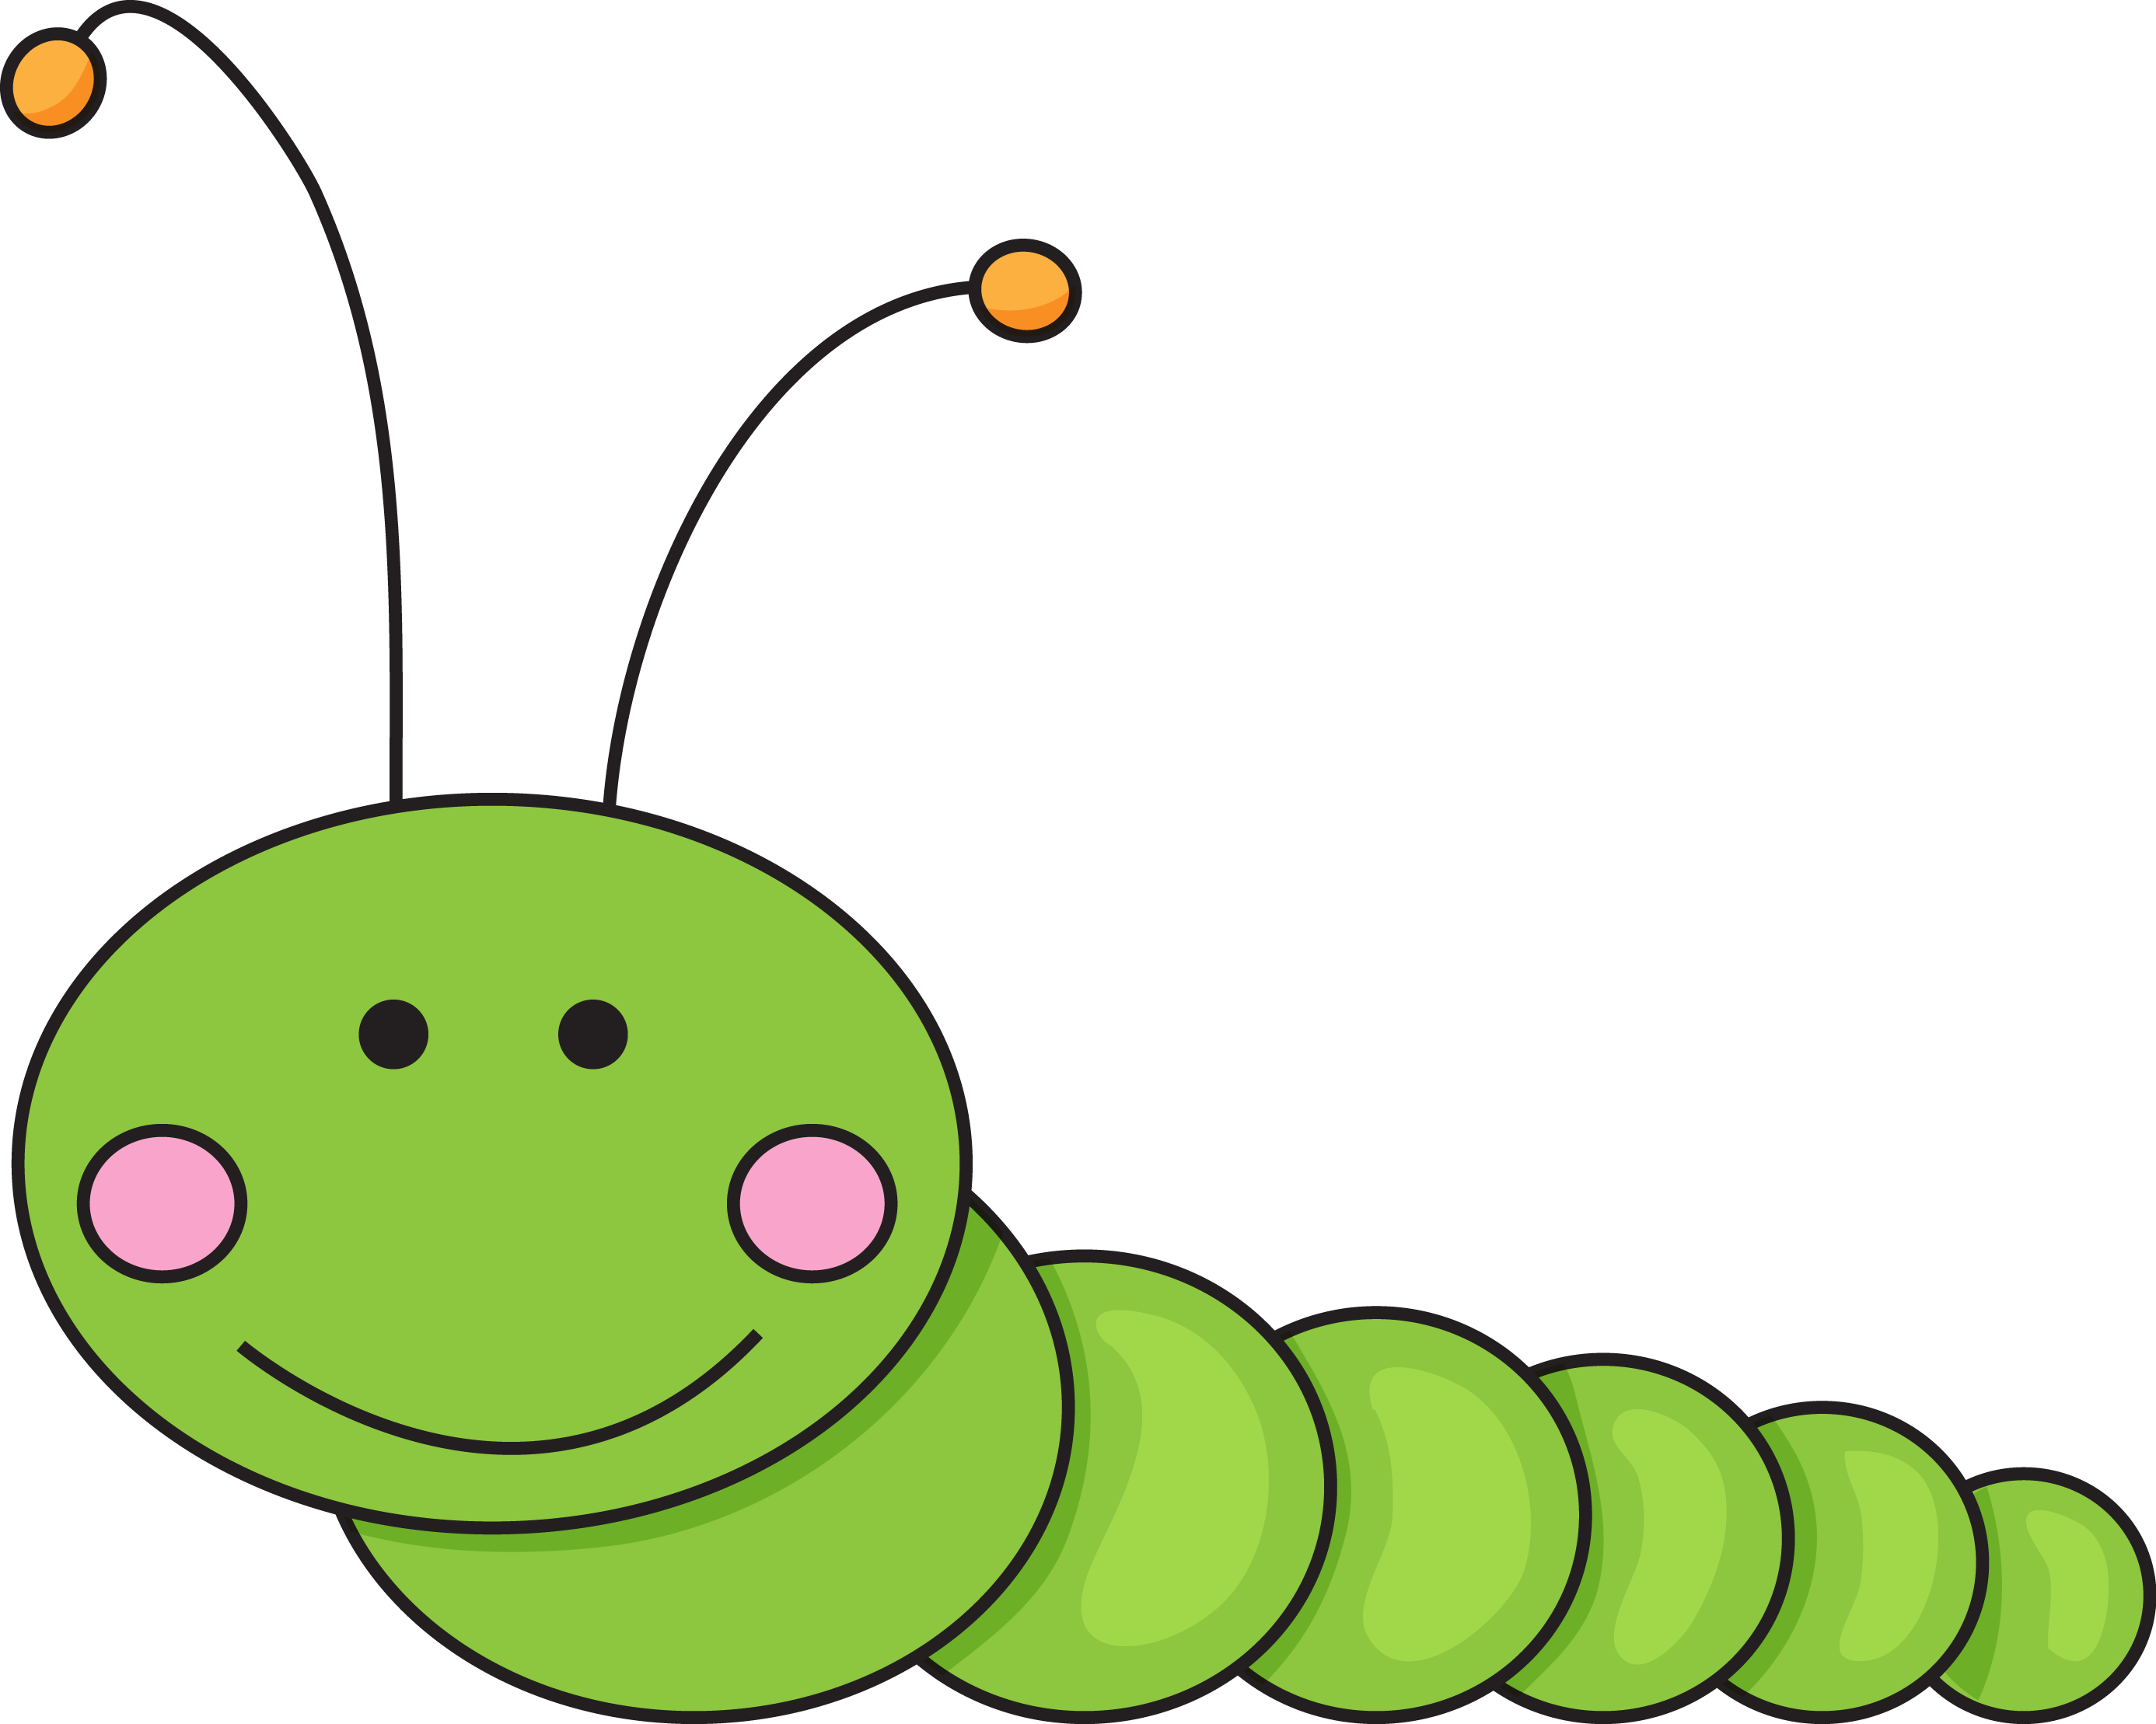 Caterpillar Clipart. Caterpillar Cartoon-Caterpillar Clipart. Caterpillar Cartoon-4